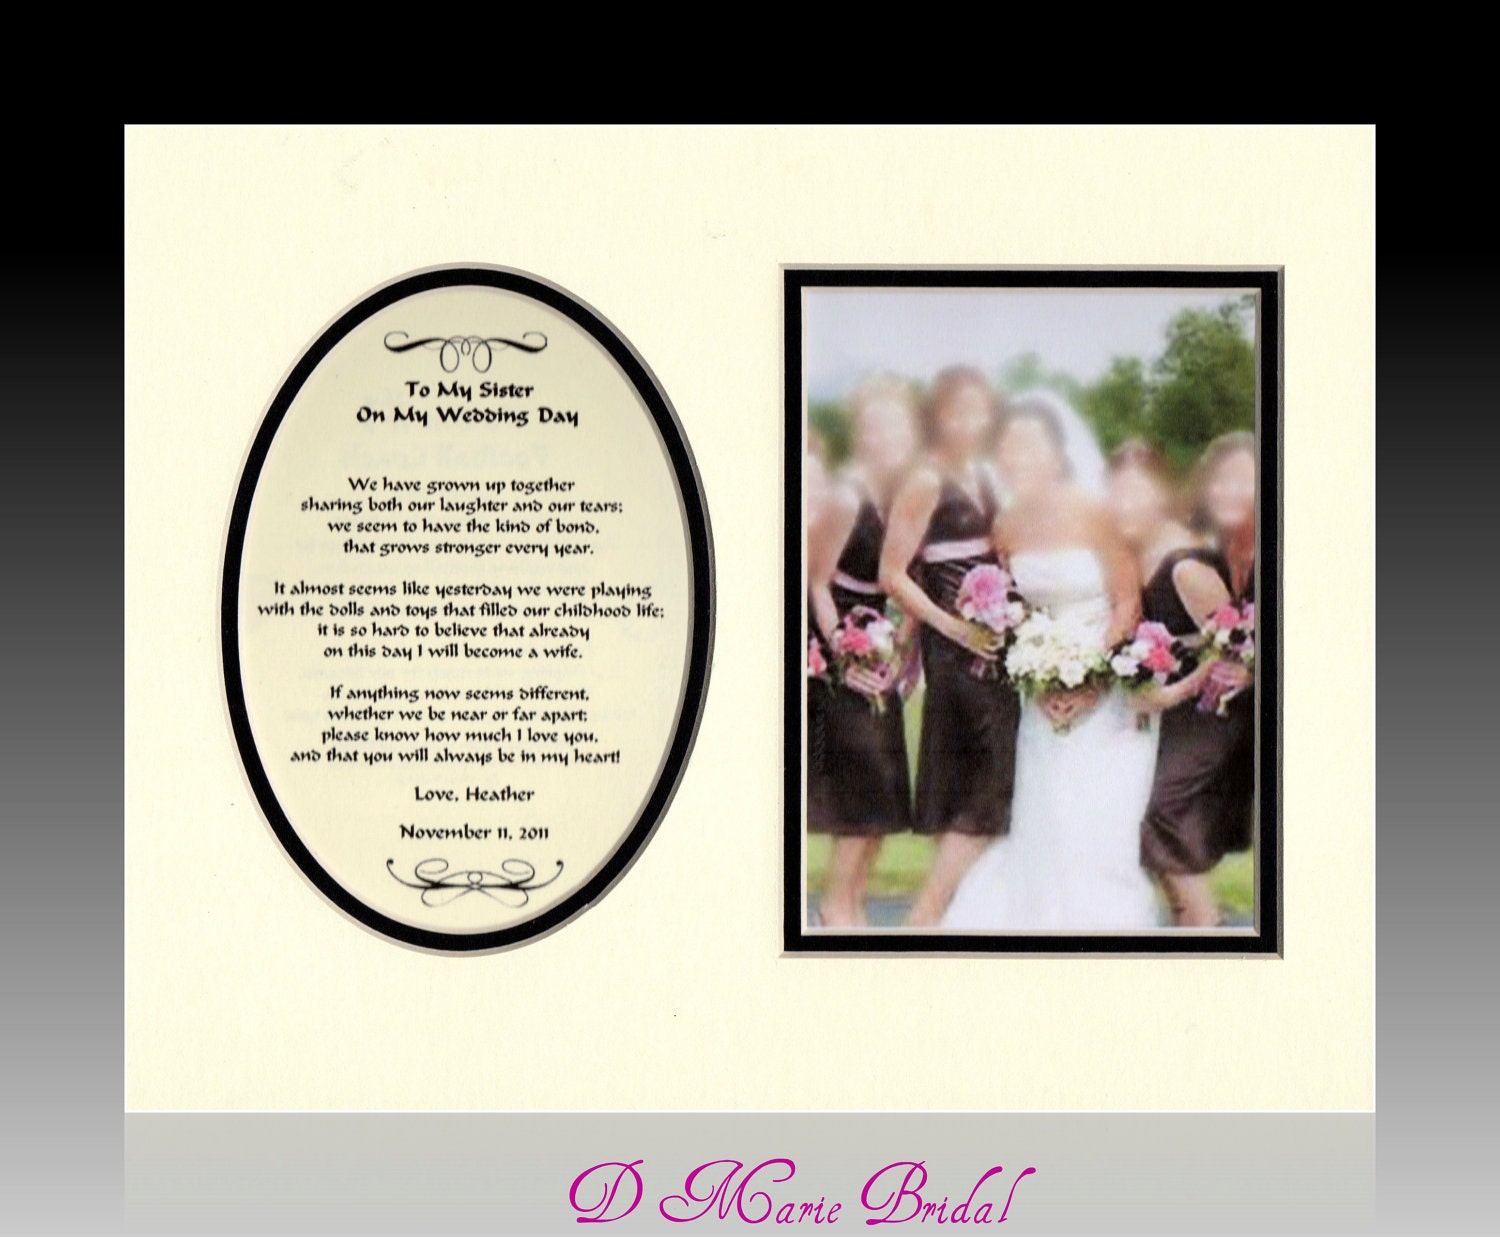 Wedding Day Gift For My Sister : Wedding To My Sister on YOUR Wedding Day personalized gift from sister ...